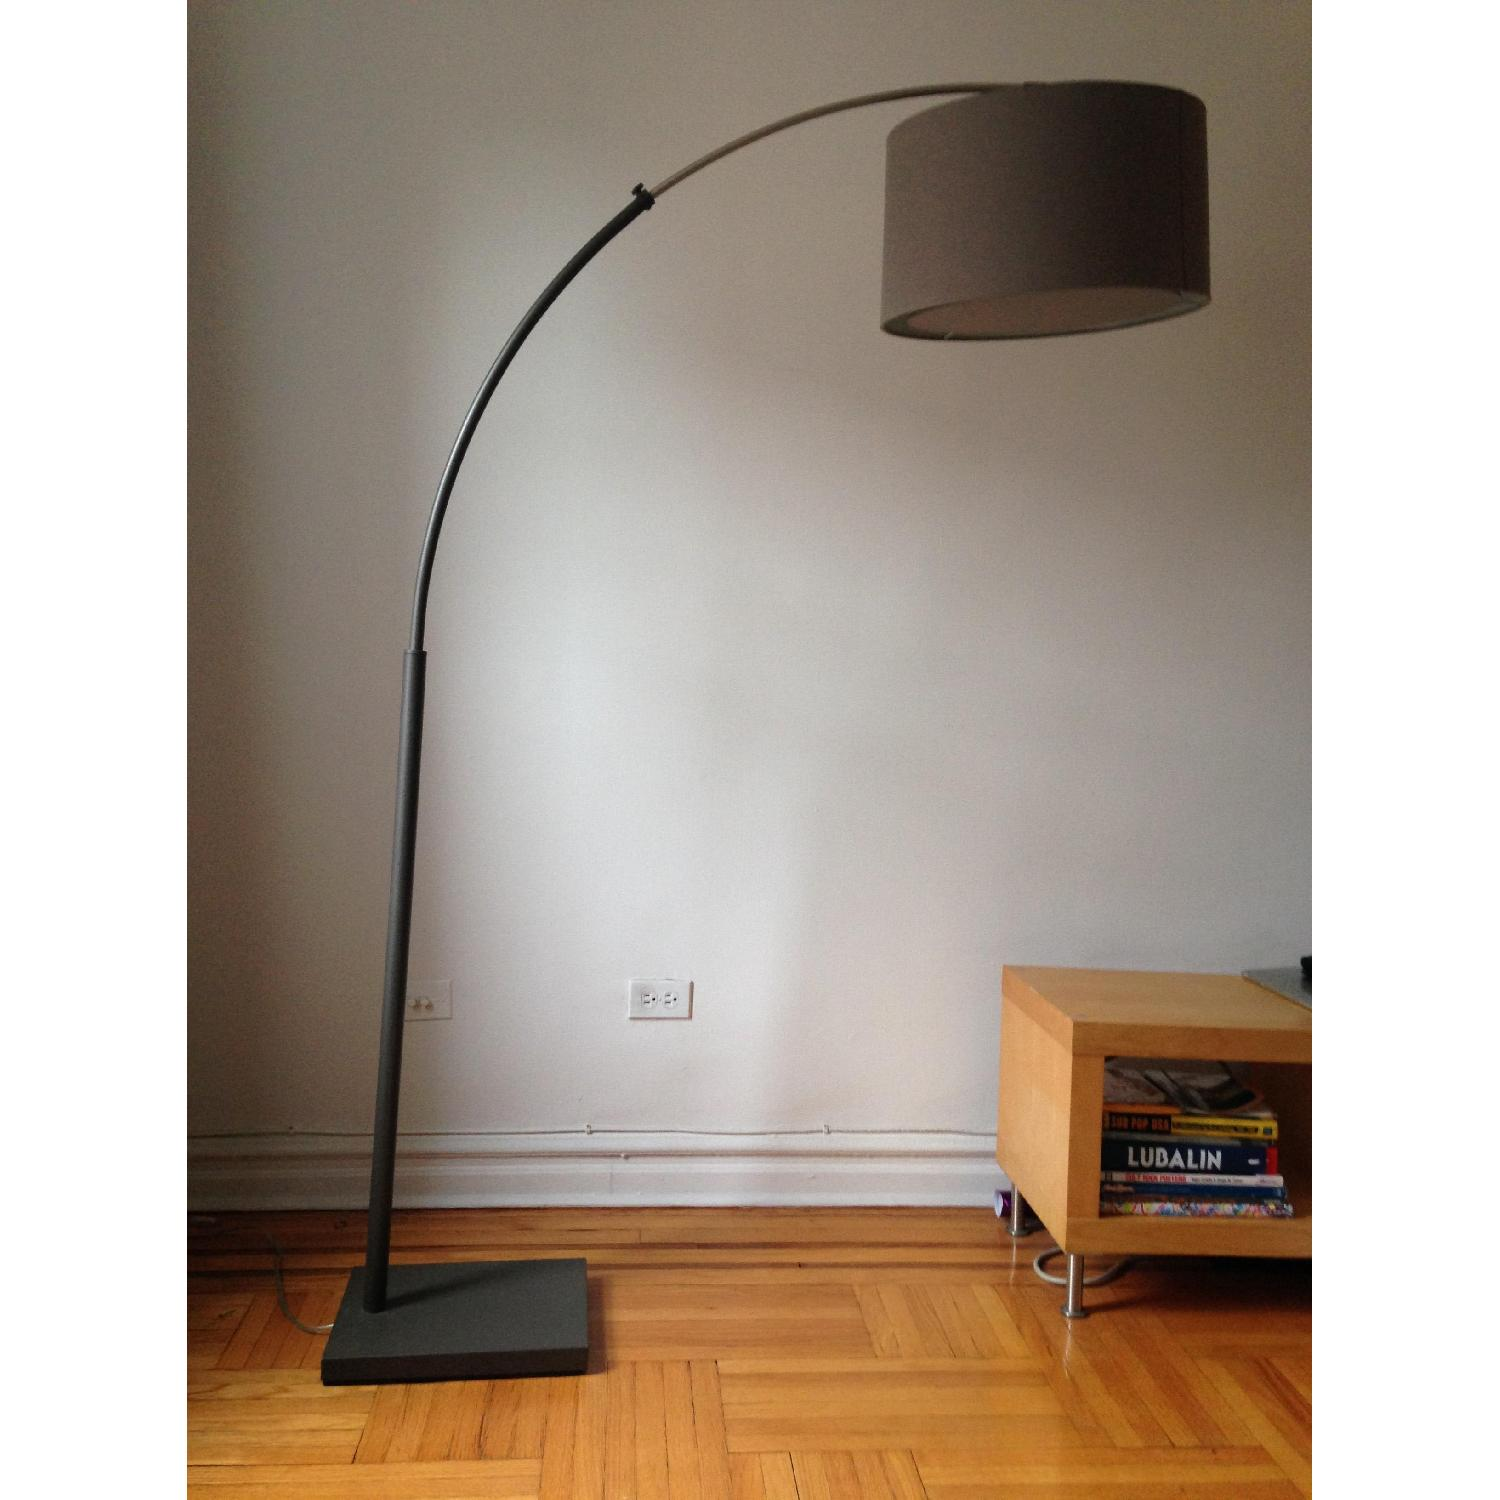 inspirational lamp within overarching floor lamps com interior lovely tripod photos for of x crate decor sizing lighting barrel awesome ideas and clubanfi